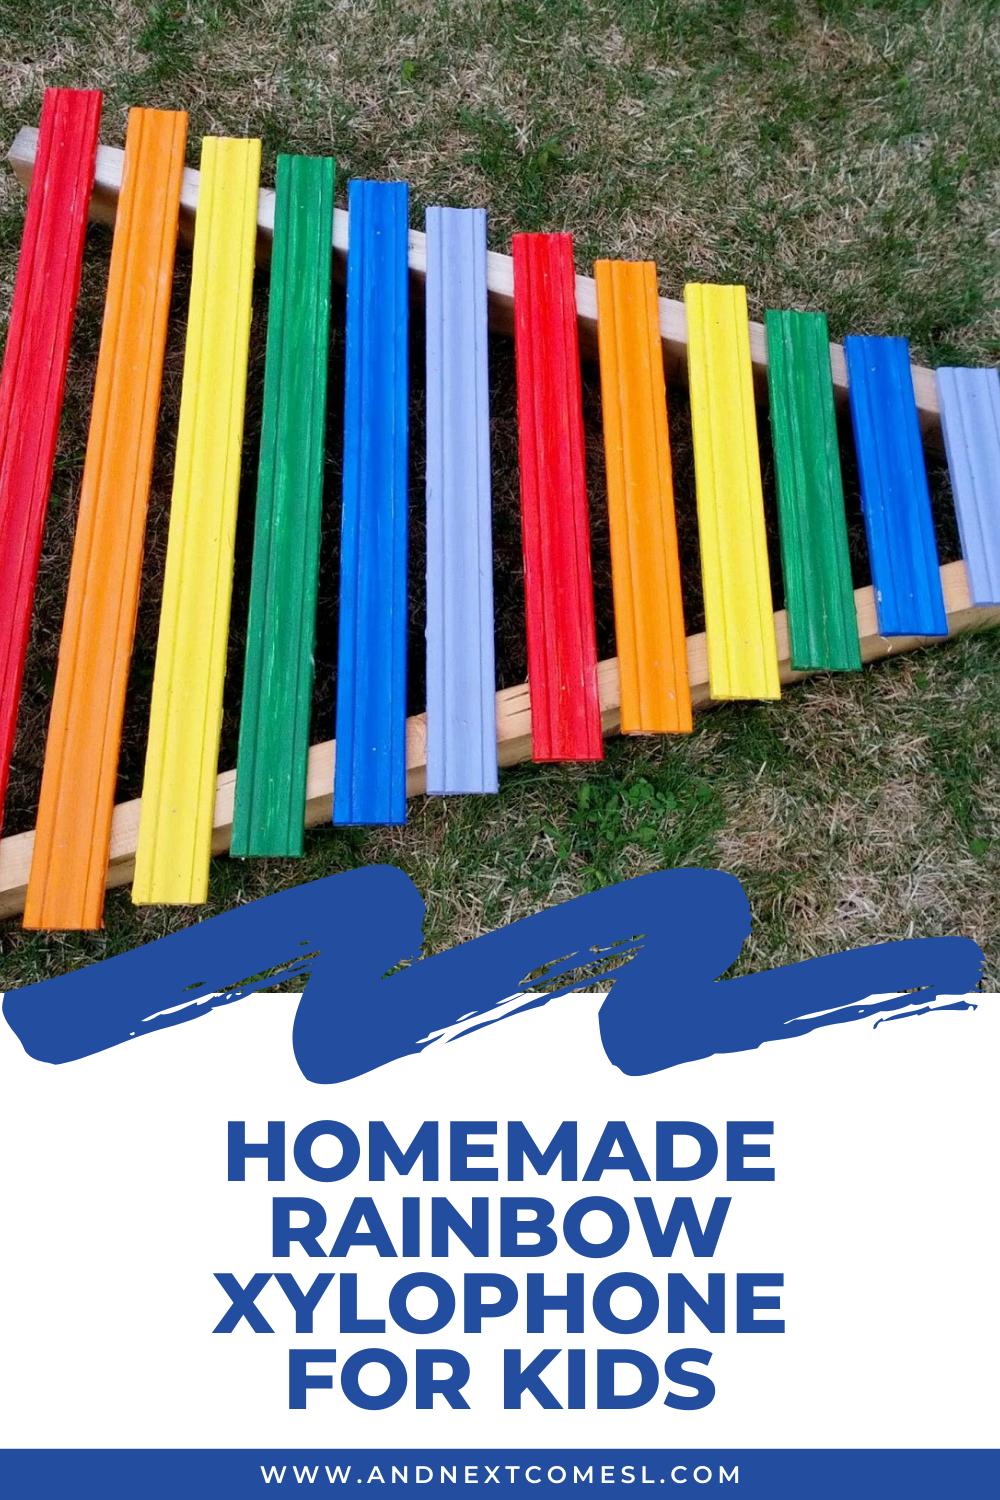 Giant rainbow xylophone tutorial: how to make a homemade xylophone for kids